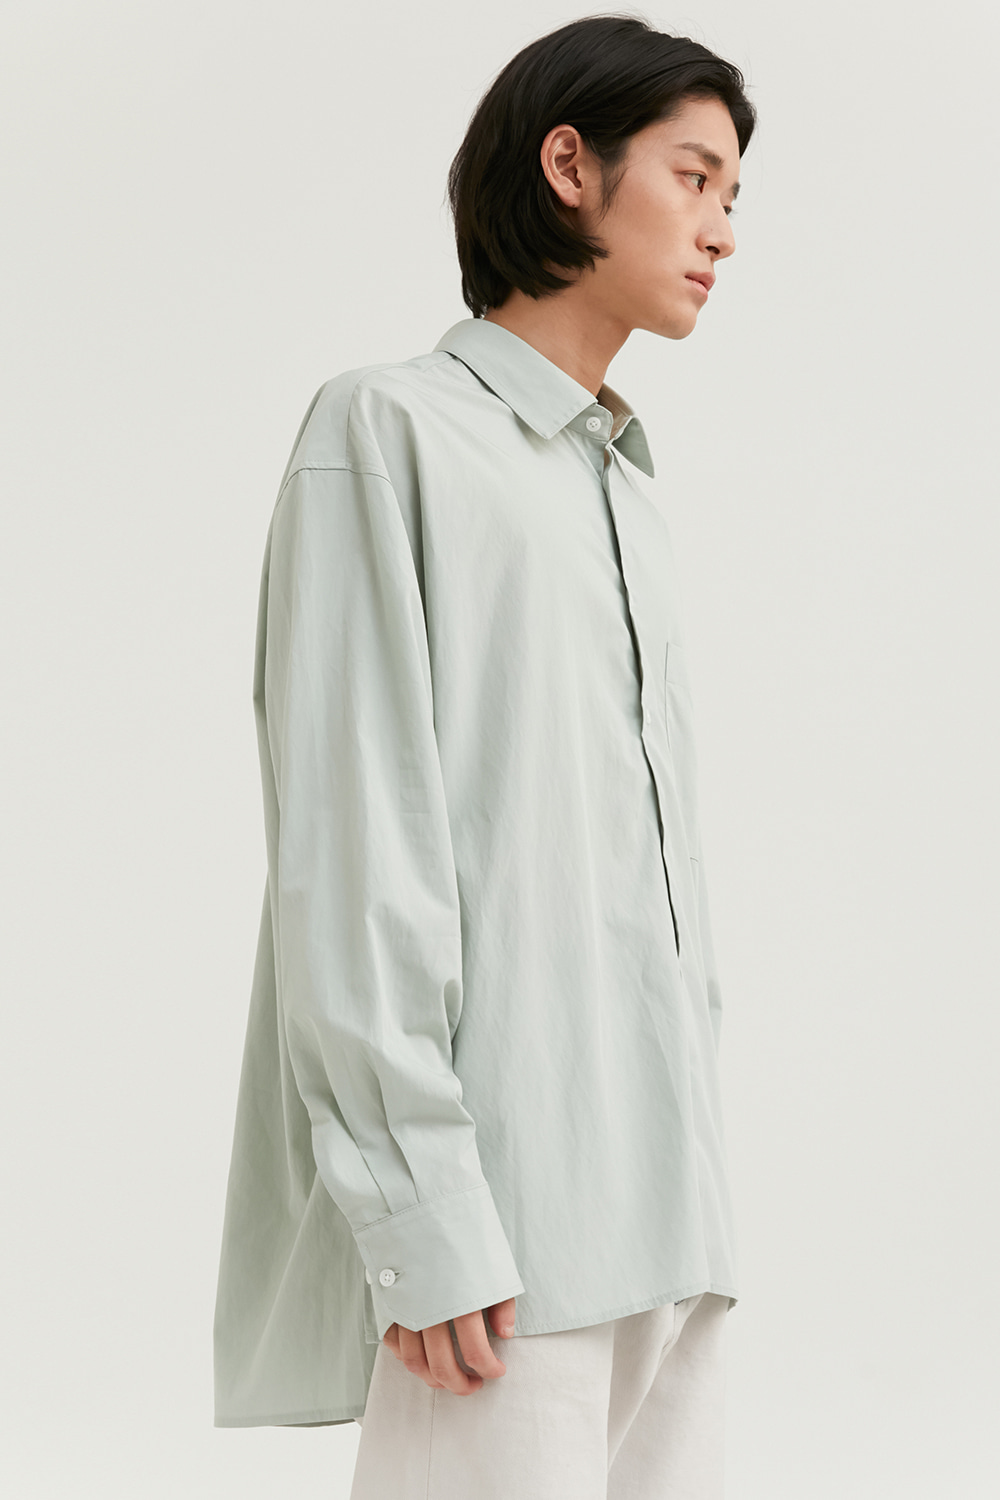 Relax Shirts Men [Light Green]